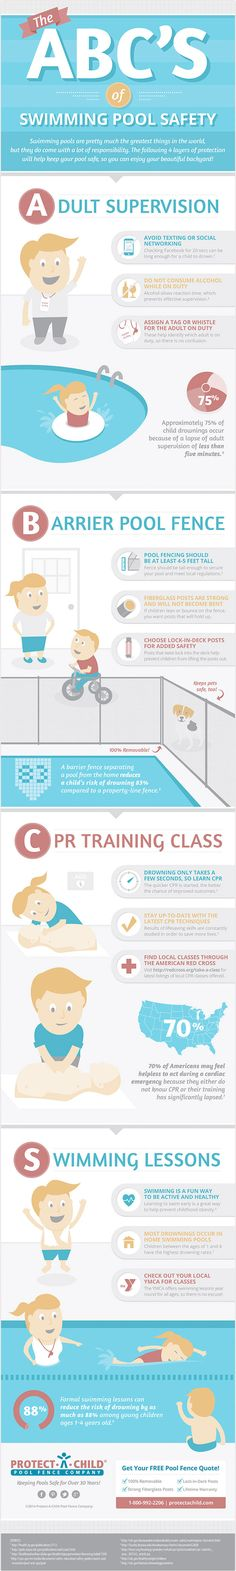 Pool Safety Infographic - The ABC'S of Swimming Pool Safety